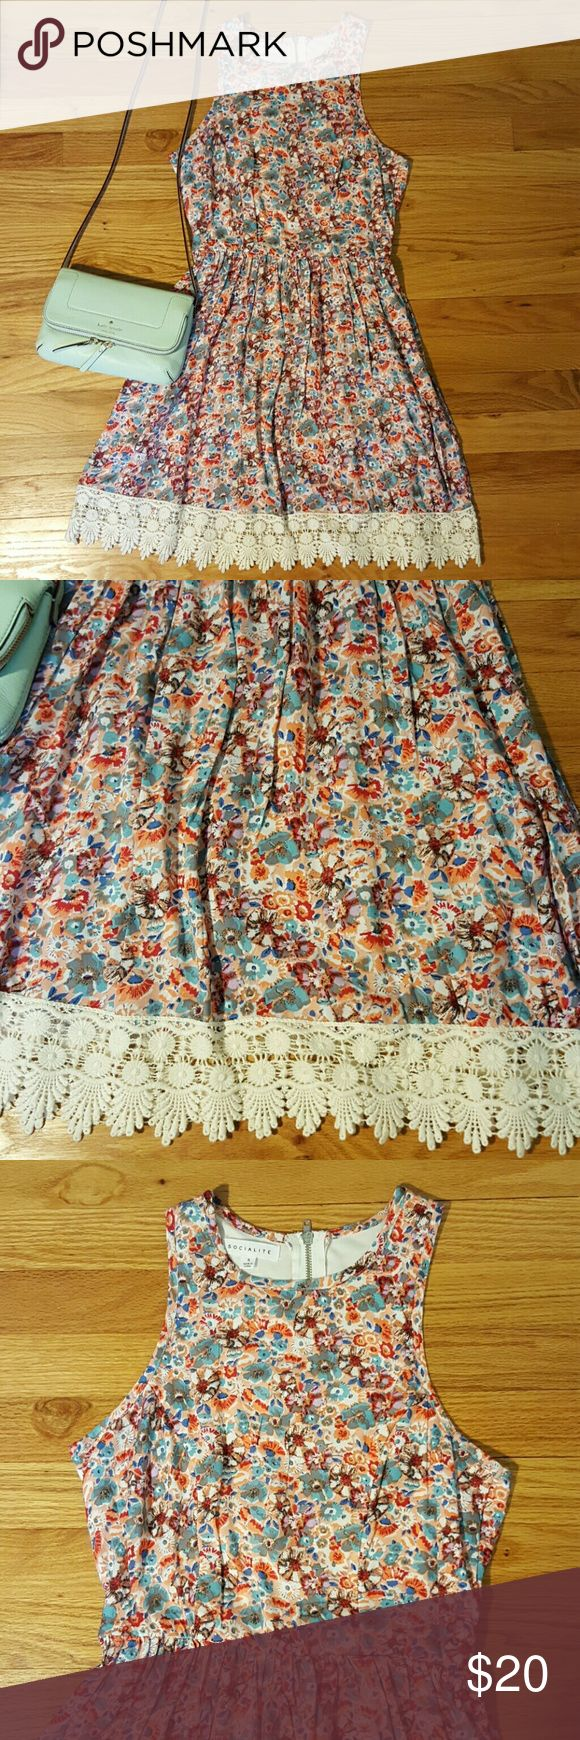 "Socialite floral fit and flare dress S New without tags, never worn!  Cute dress by Socialtite from Nordstrom.  Floral print in peach, red, light blue, and lavender.  Cream lace trim along the hemline.  Fit and flare style with defined waist- would look great with a belt.  Top has higher rounded neckline and narrow shoulders, strapless or racerback bra recommended underneath ??  Has exposed zipper along center back.  Perfect summer mini dress!  Measures 30"" around bust, waist is stretches…"